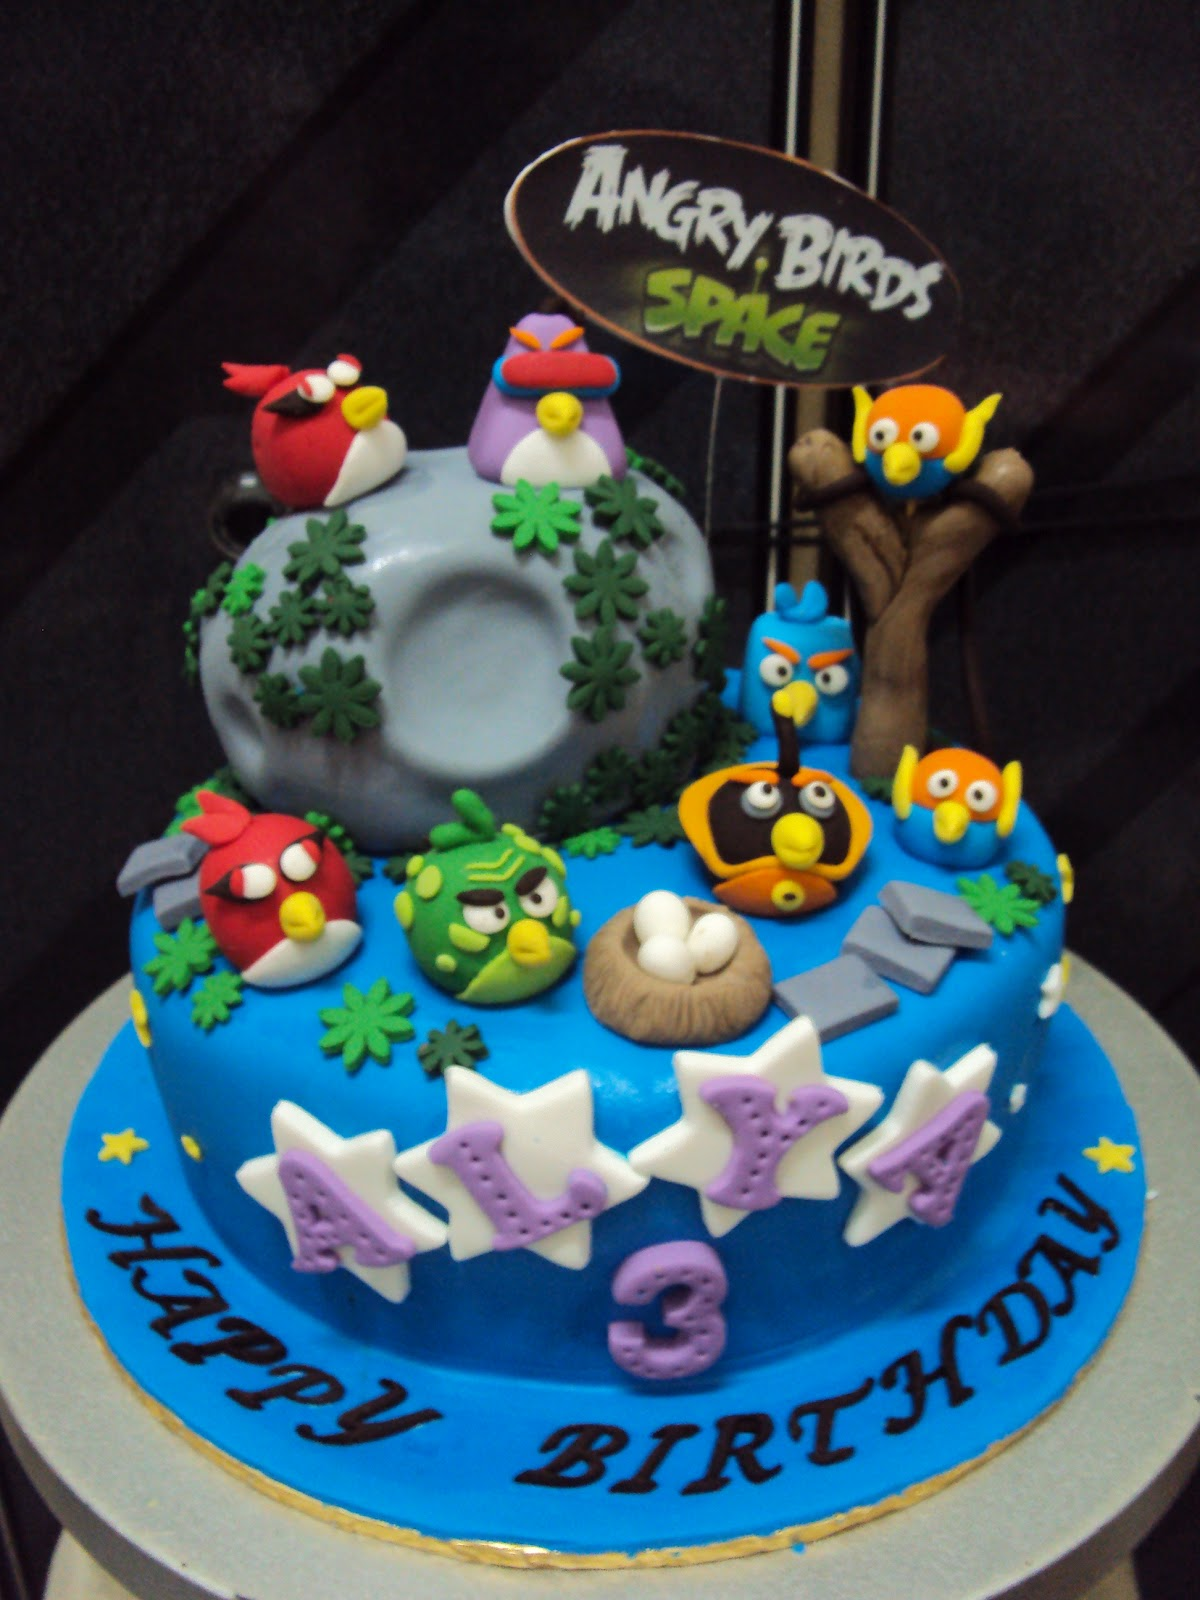 L Mis Cakes Amp Cupcakes Ipoh Contact 012 Angry